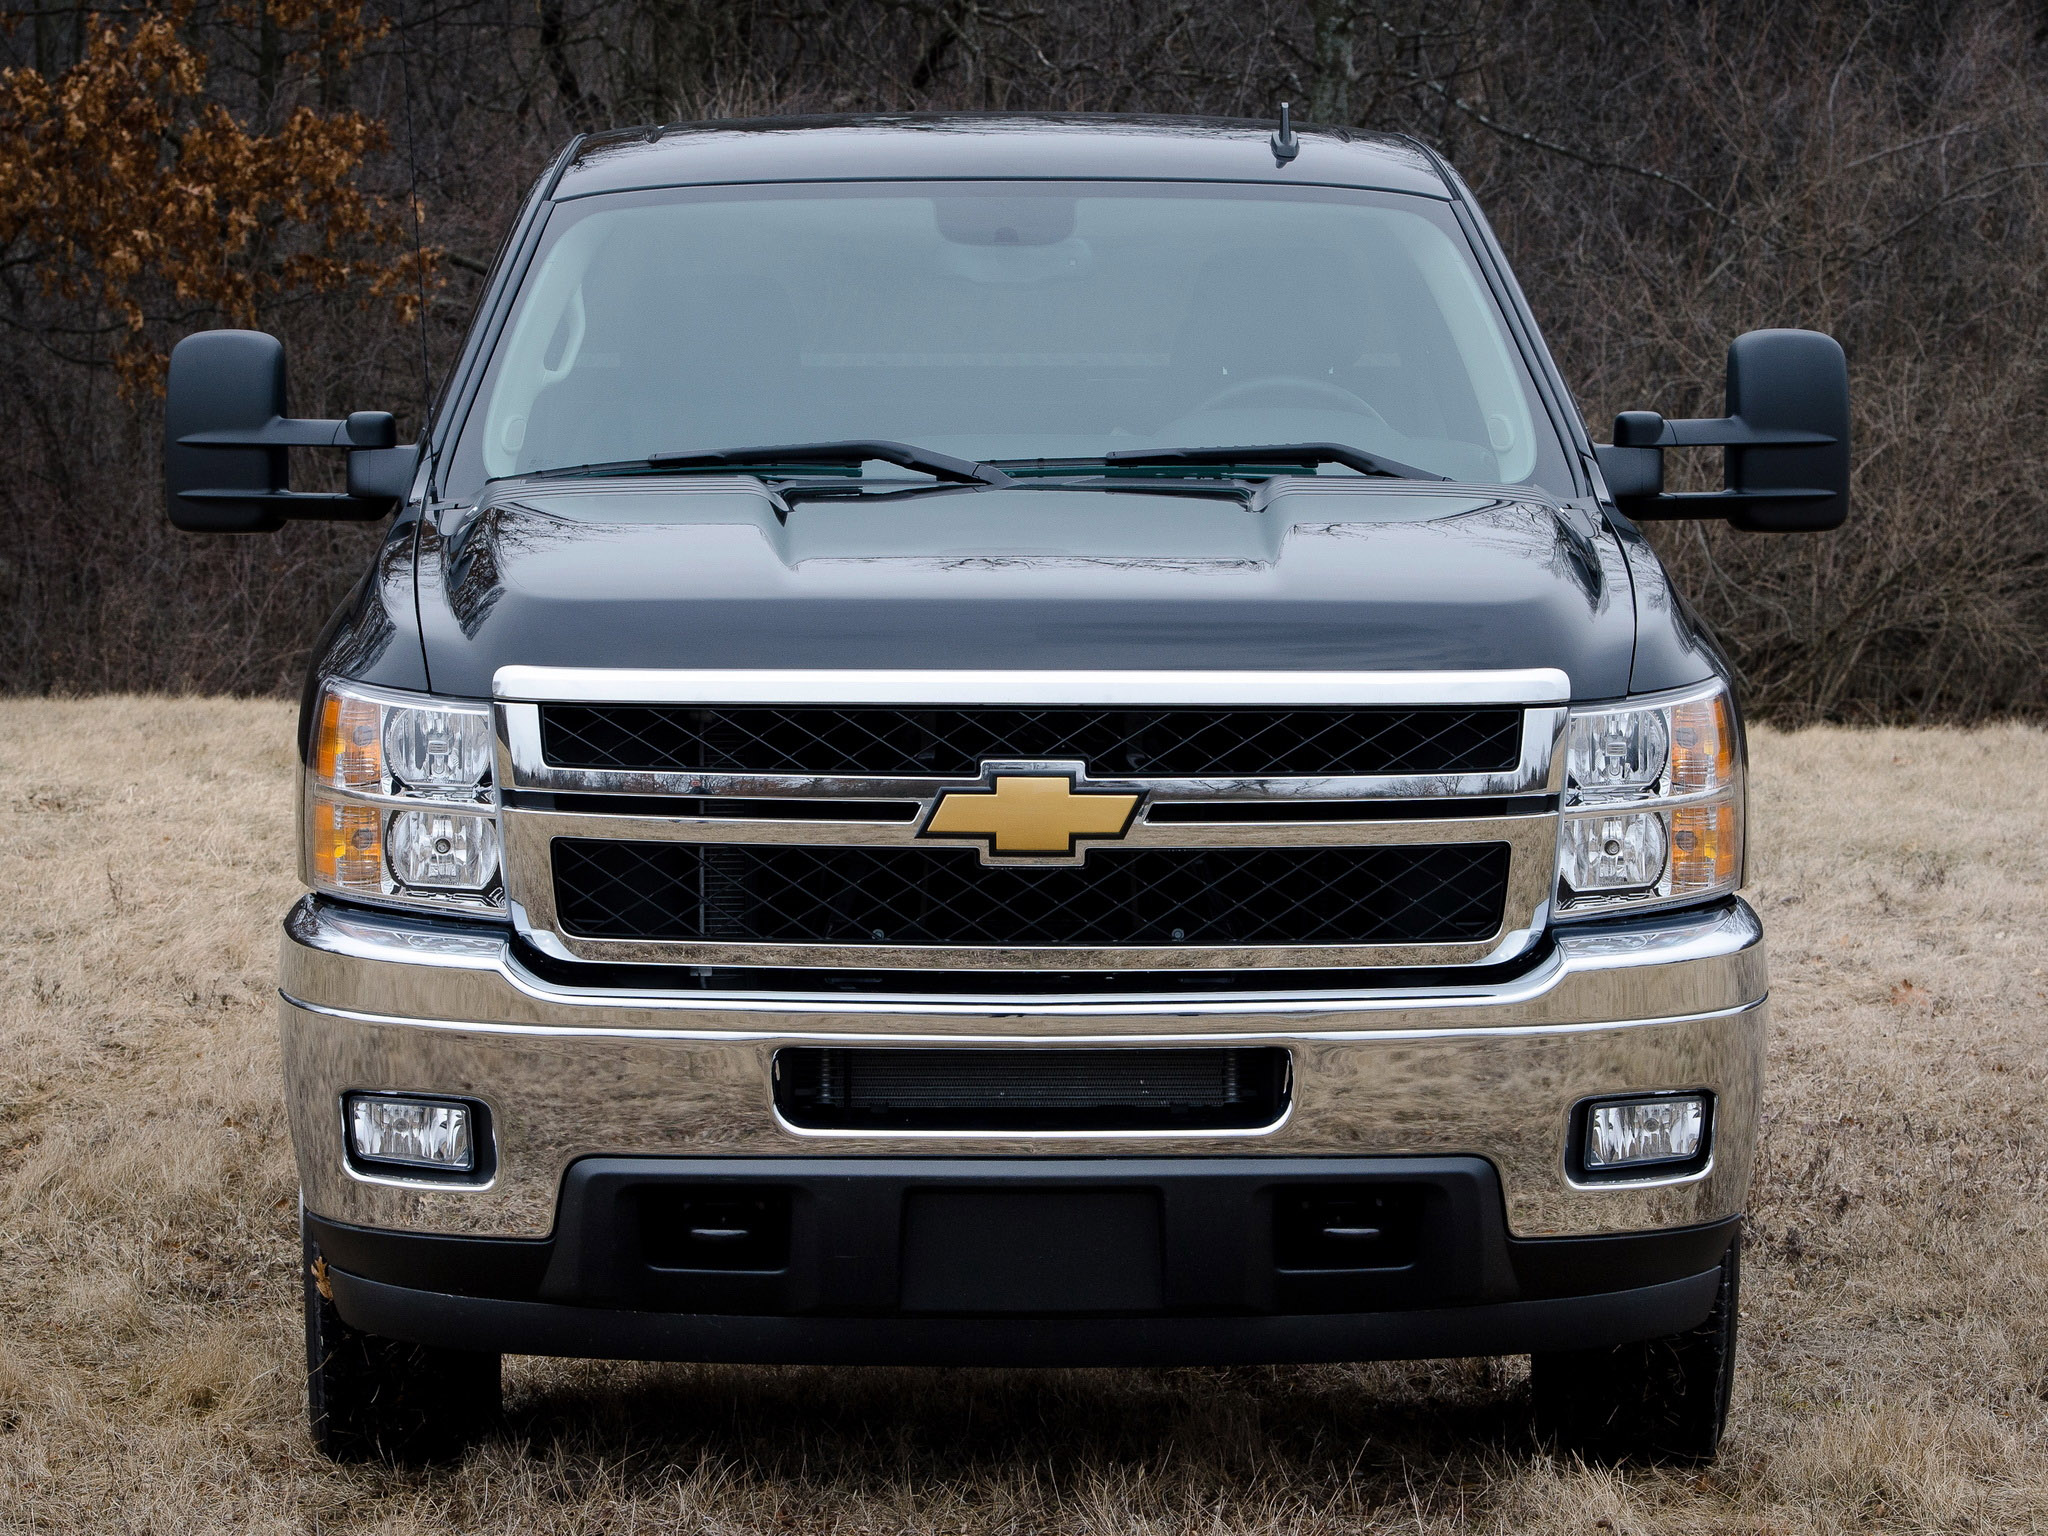 chevrolet silverado 2500 hd cng extended cab 2012 chevrolet silverado 2500 hd cng extended cab. Black Bedroom Furniture Sets. Home Design Ideas